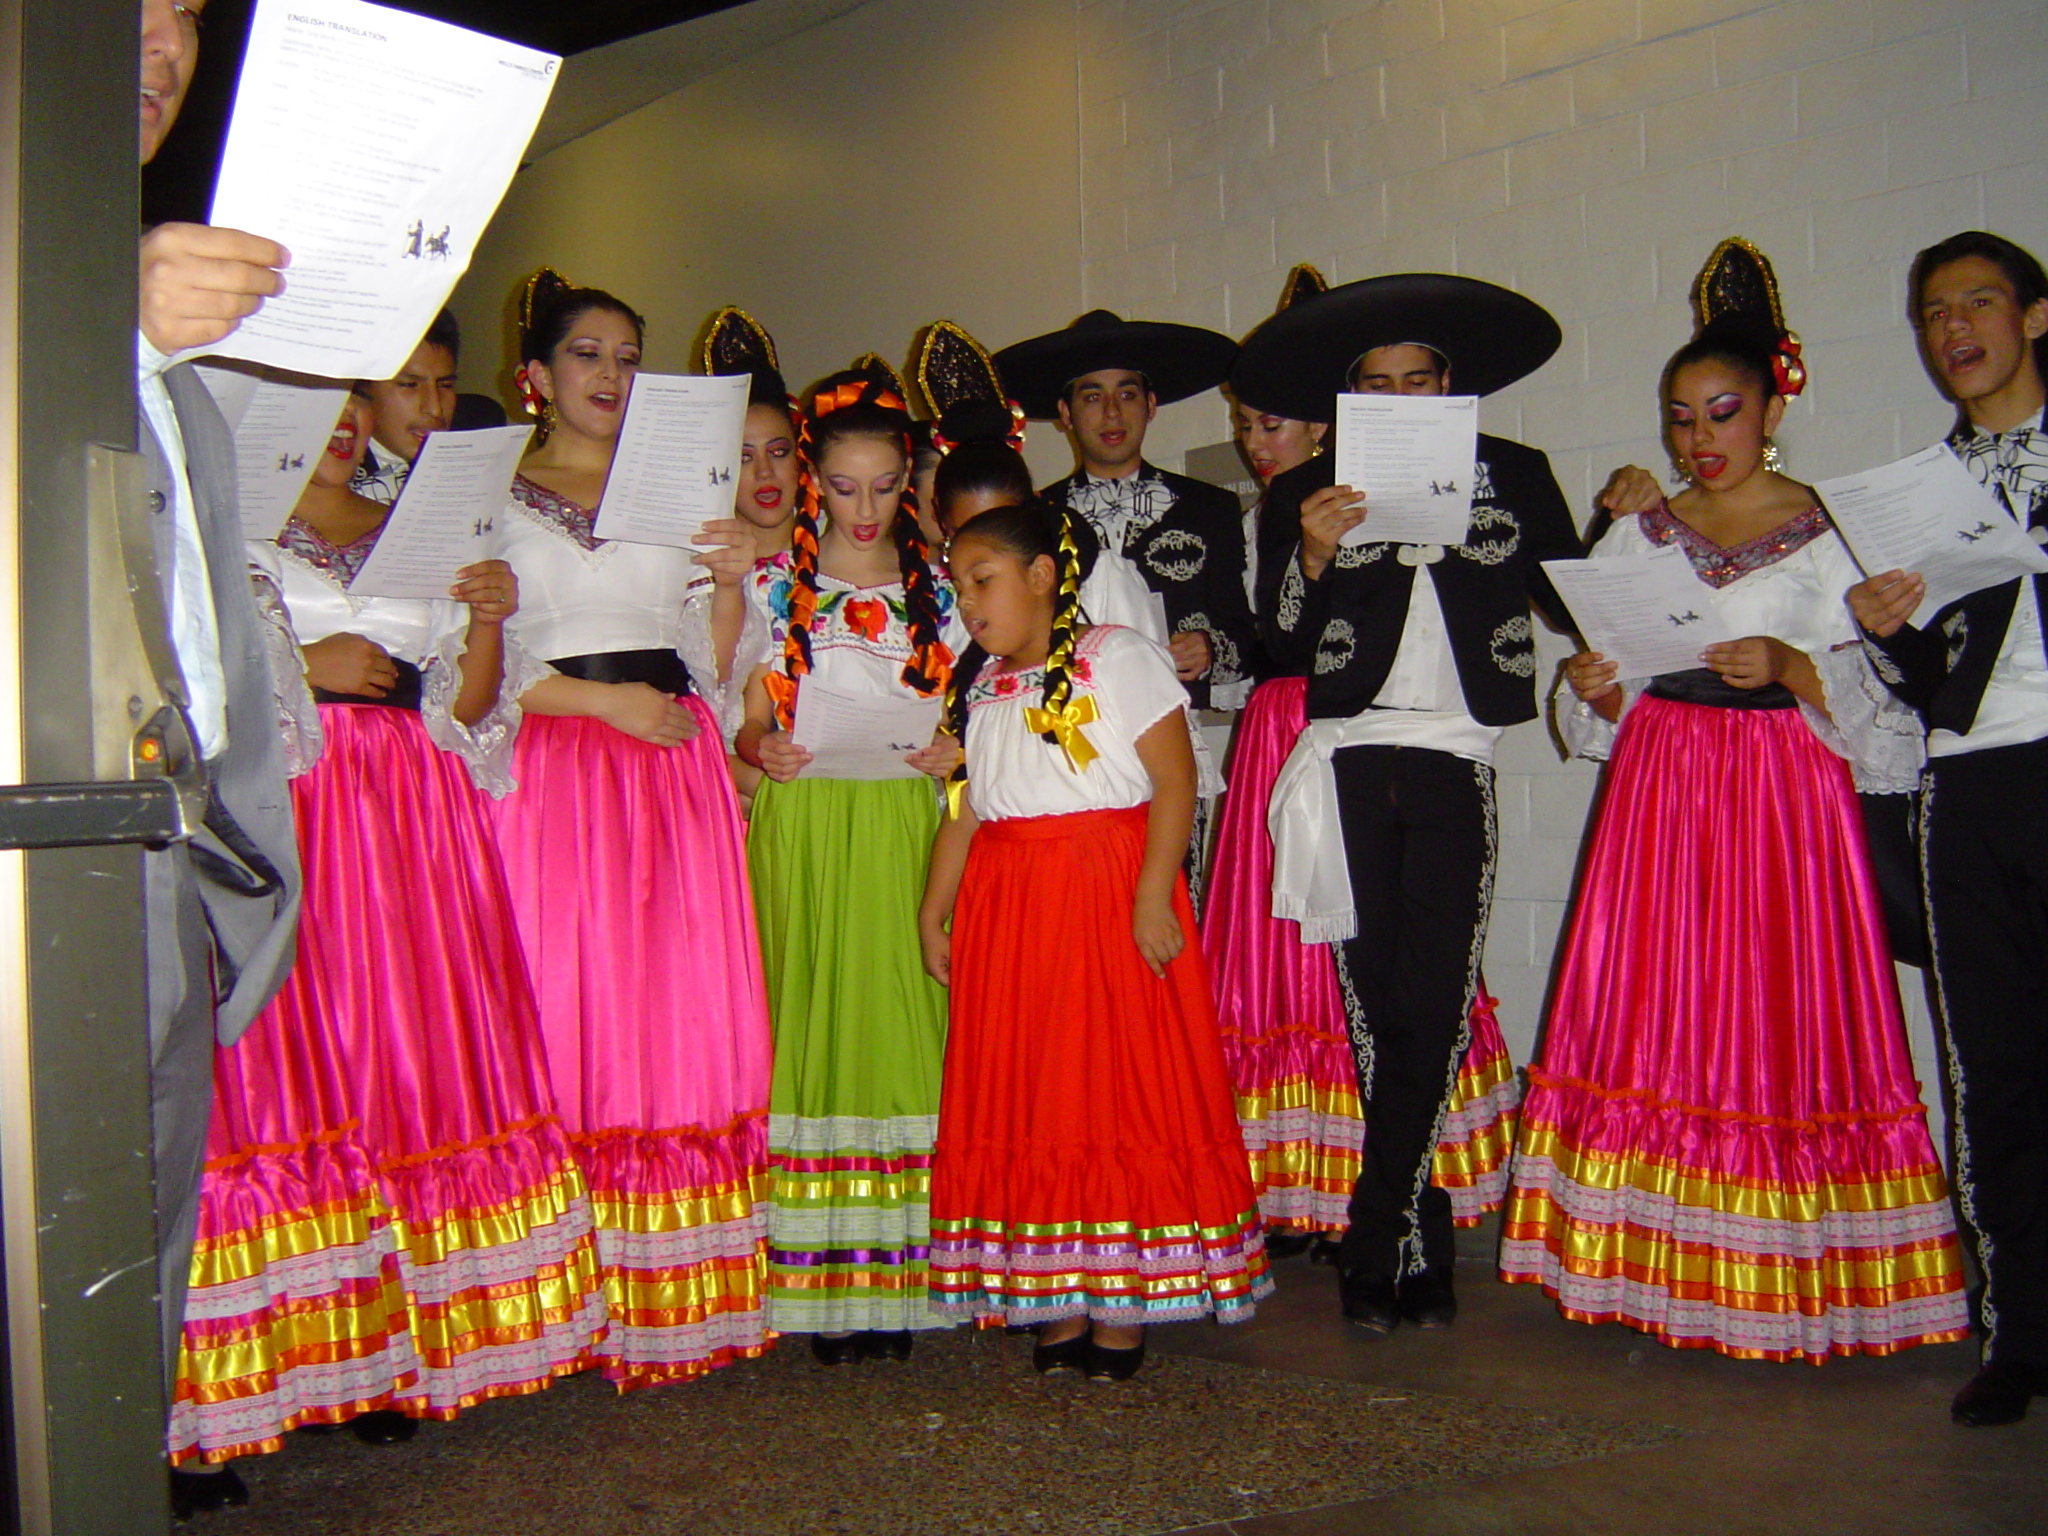 Mexican Christmas Traditions.Mexican Christmas Traditions With A Few Twists In Posada